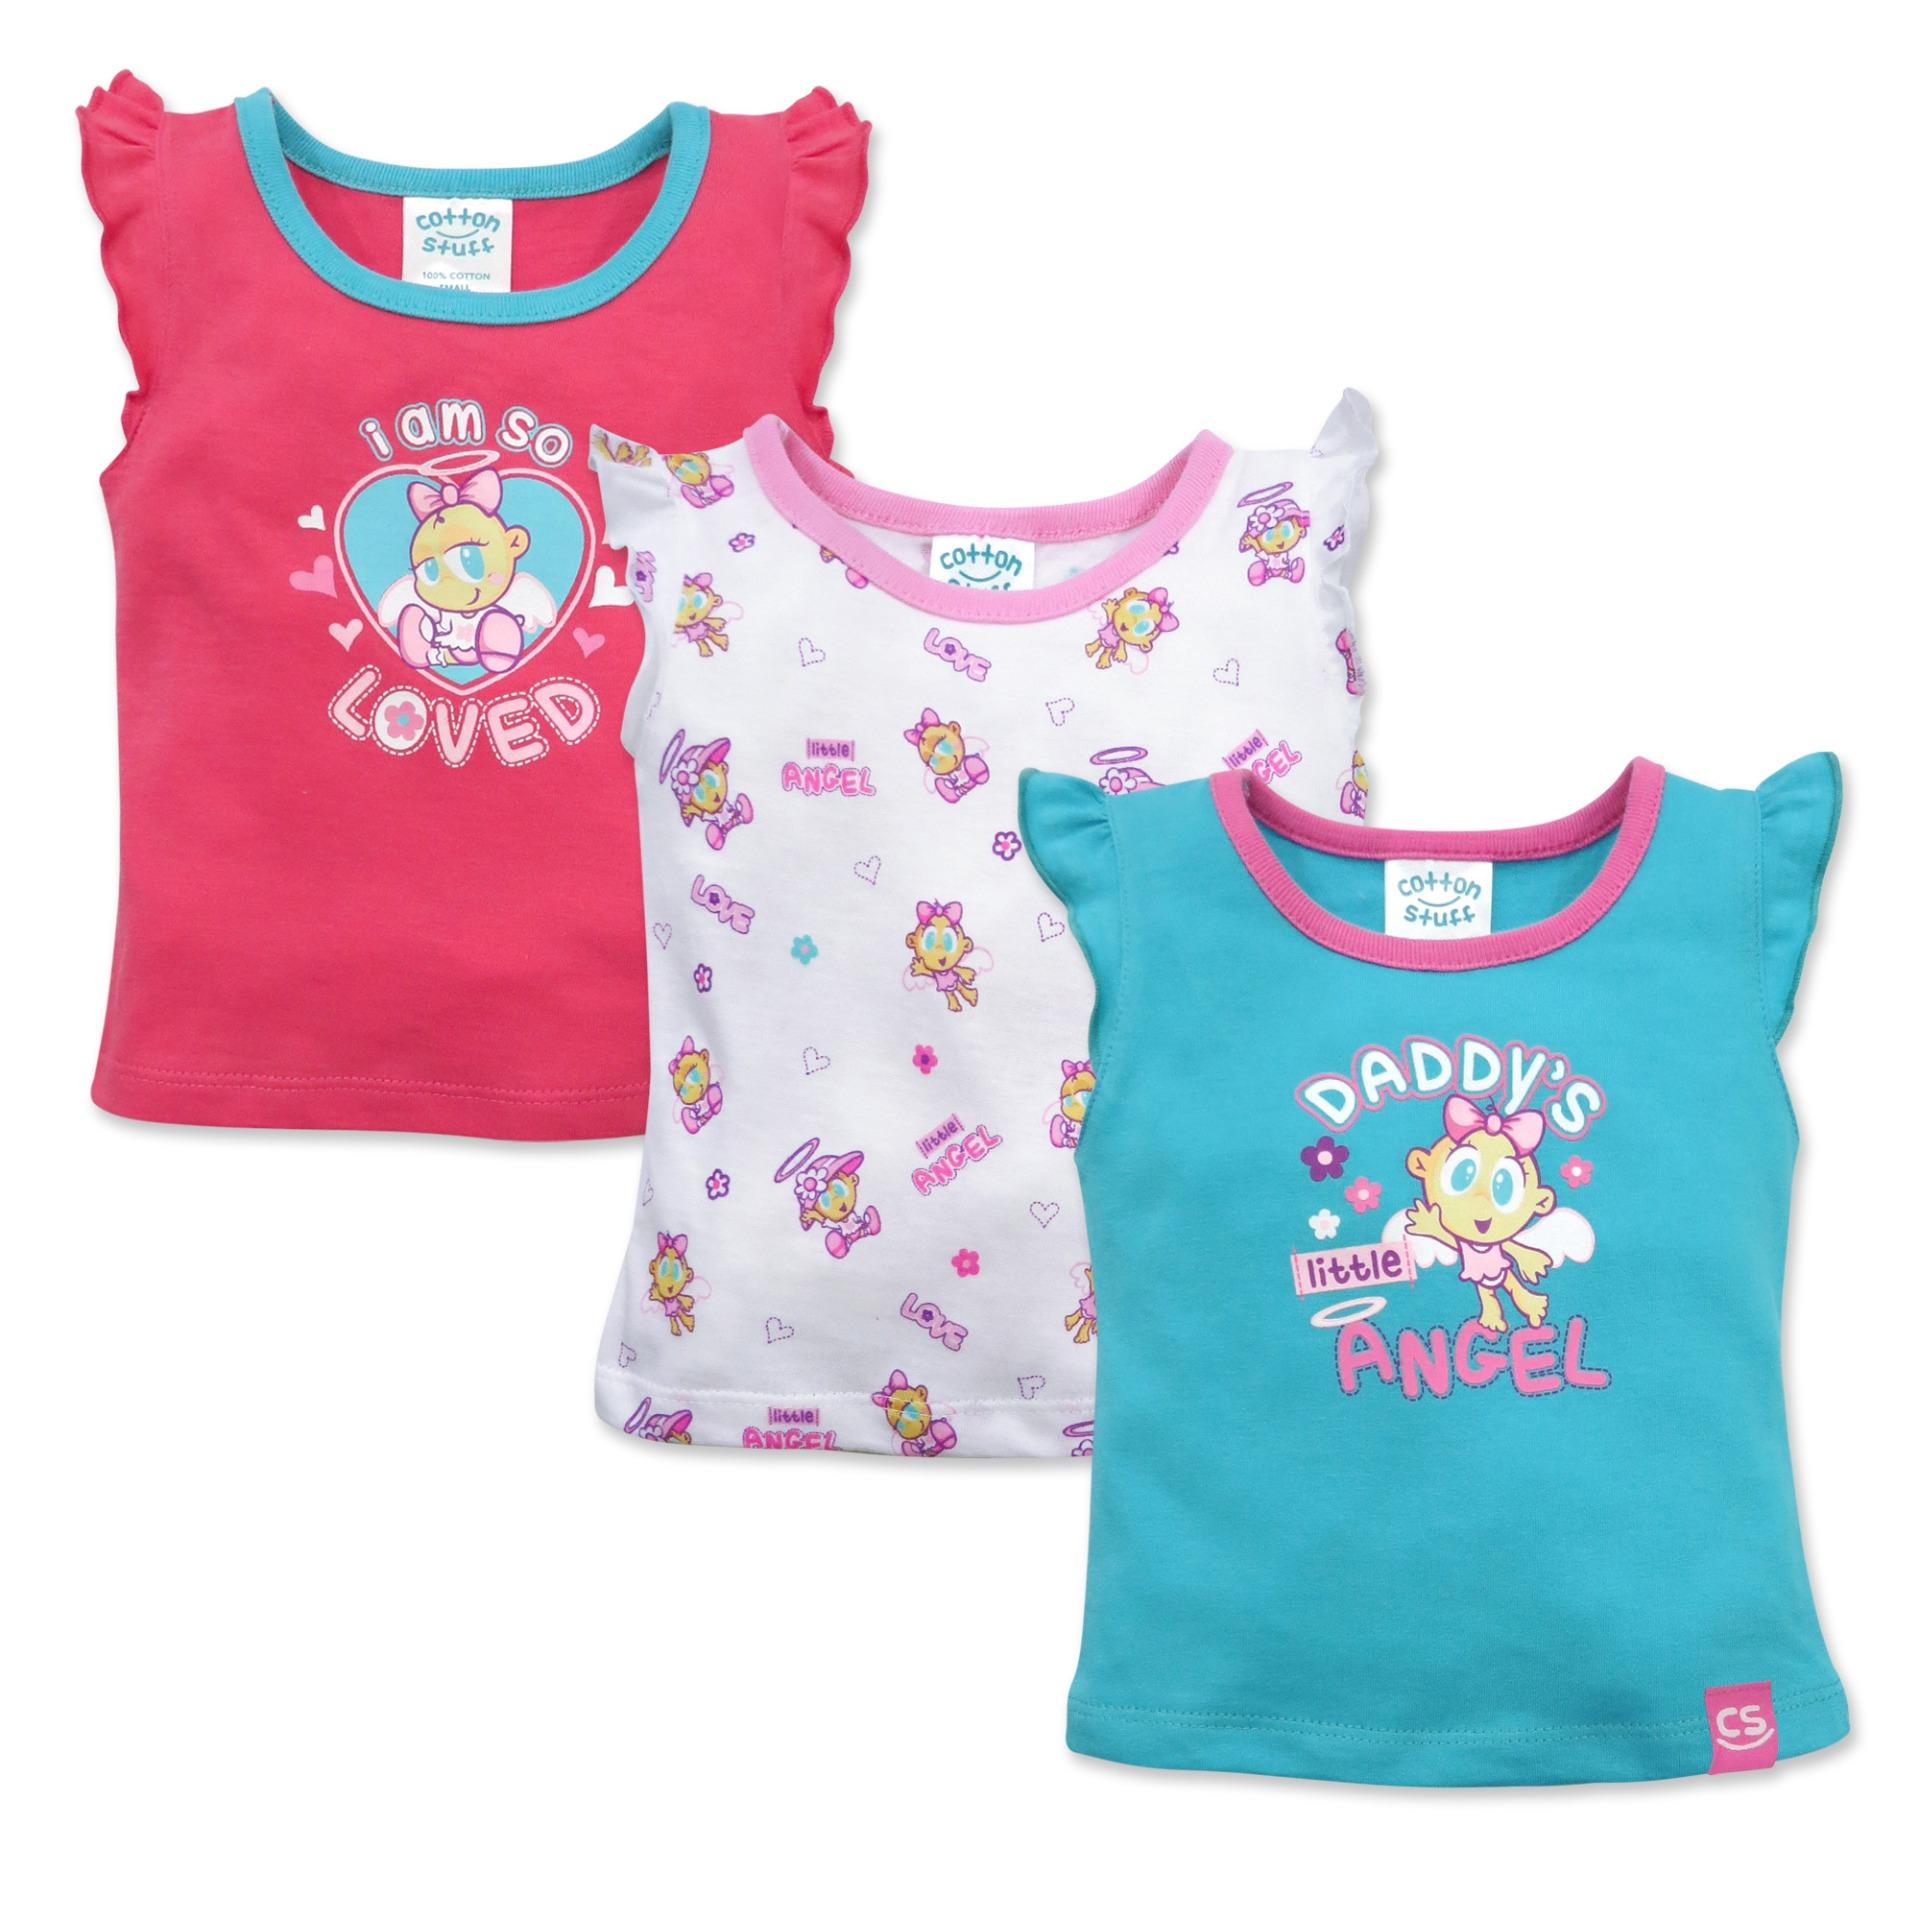 Young Girls Clothing For Sale Baby Online I Am Cotton Sleeveless Romper Blue Sea Stuff 3 Piece Ruffle Blouse Im So Loved